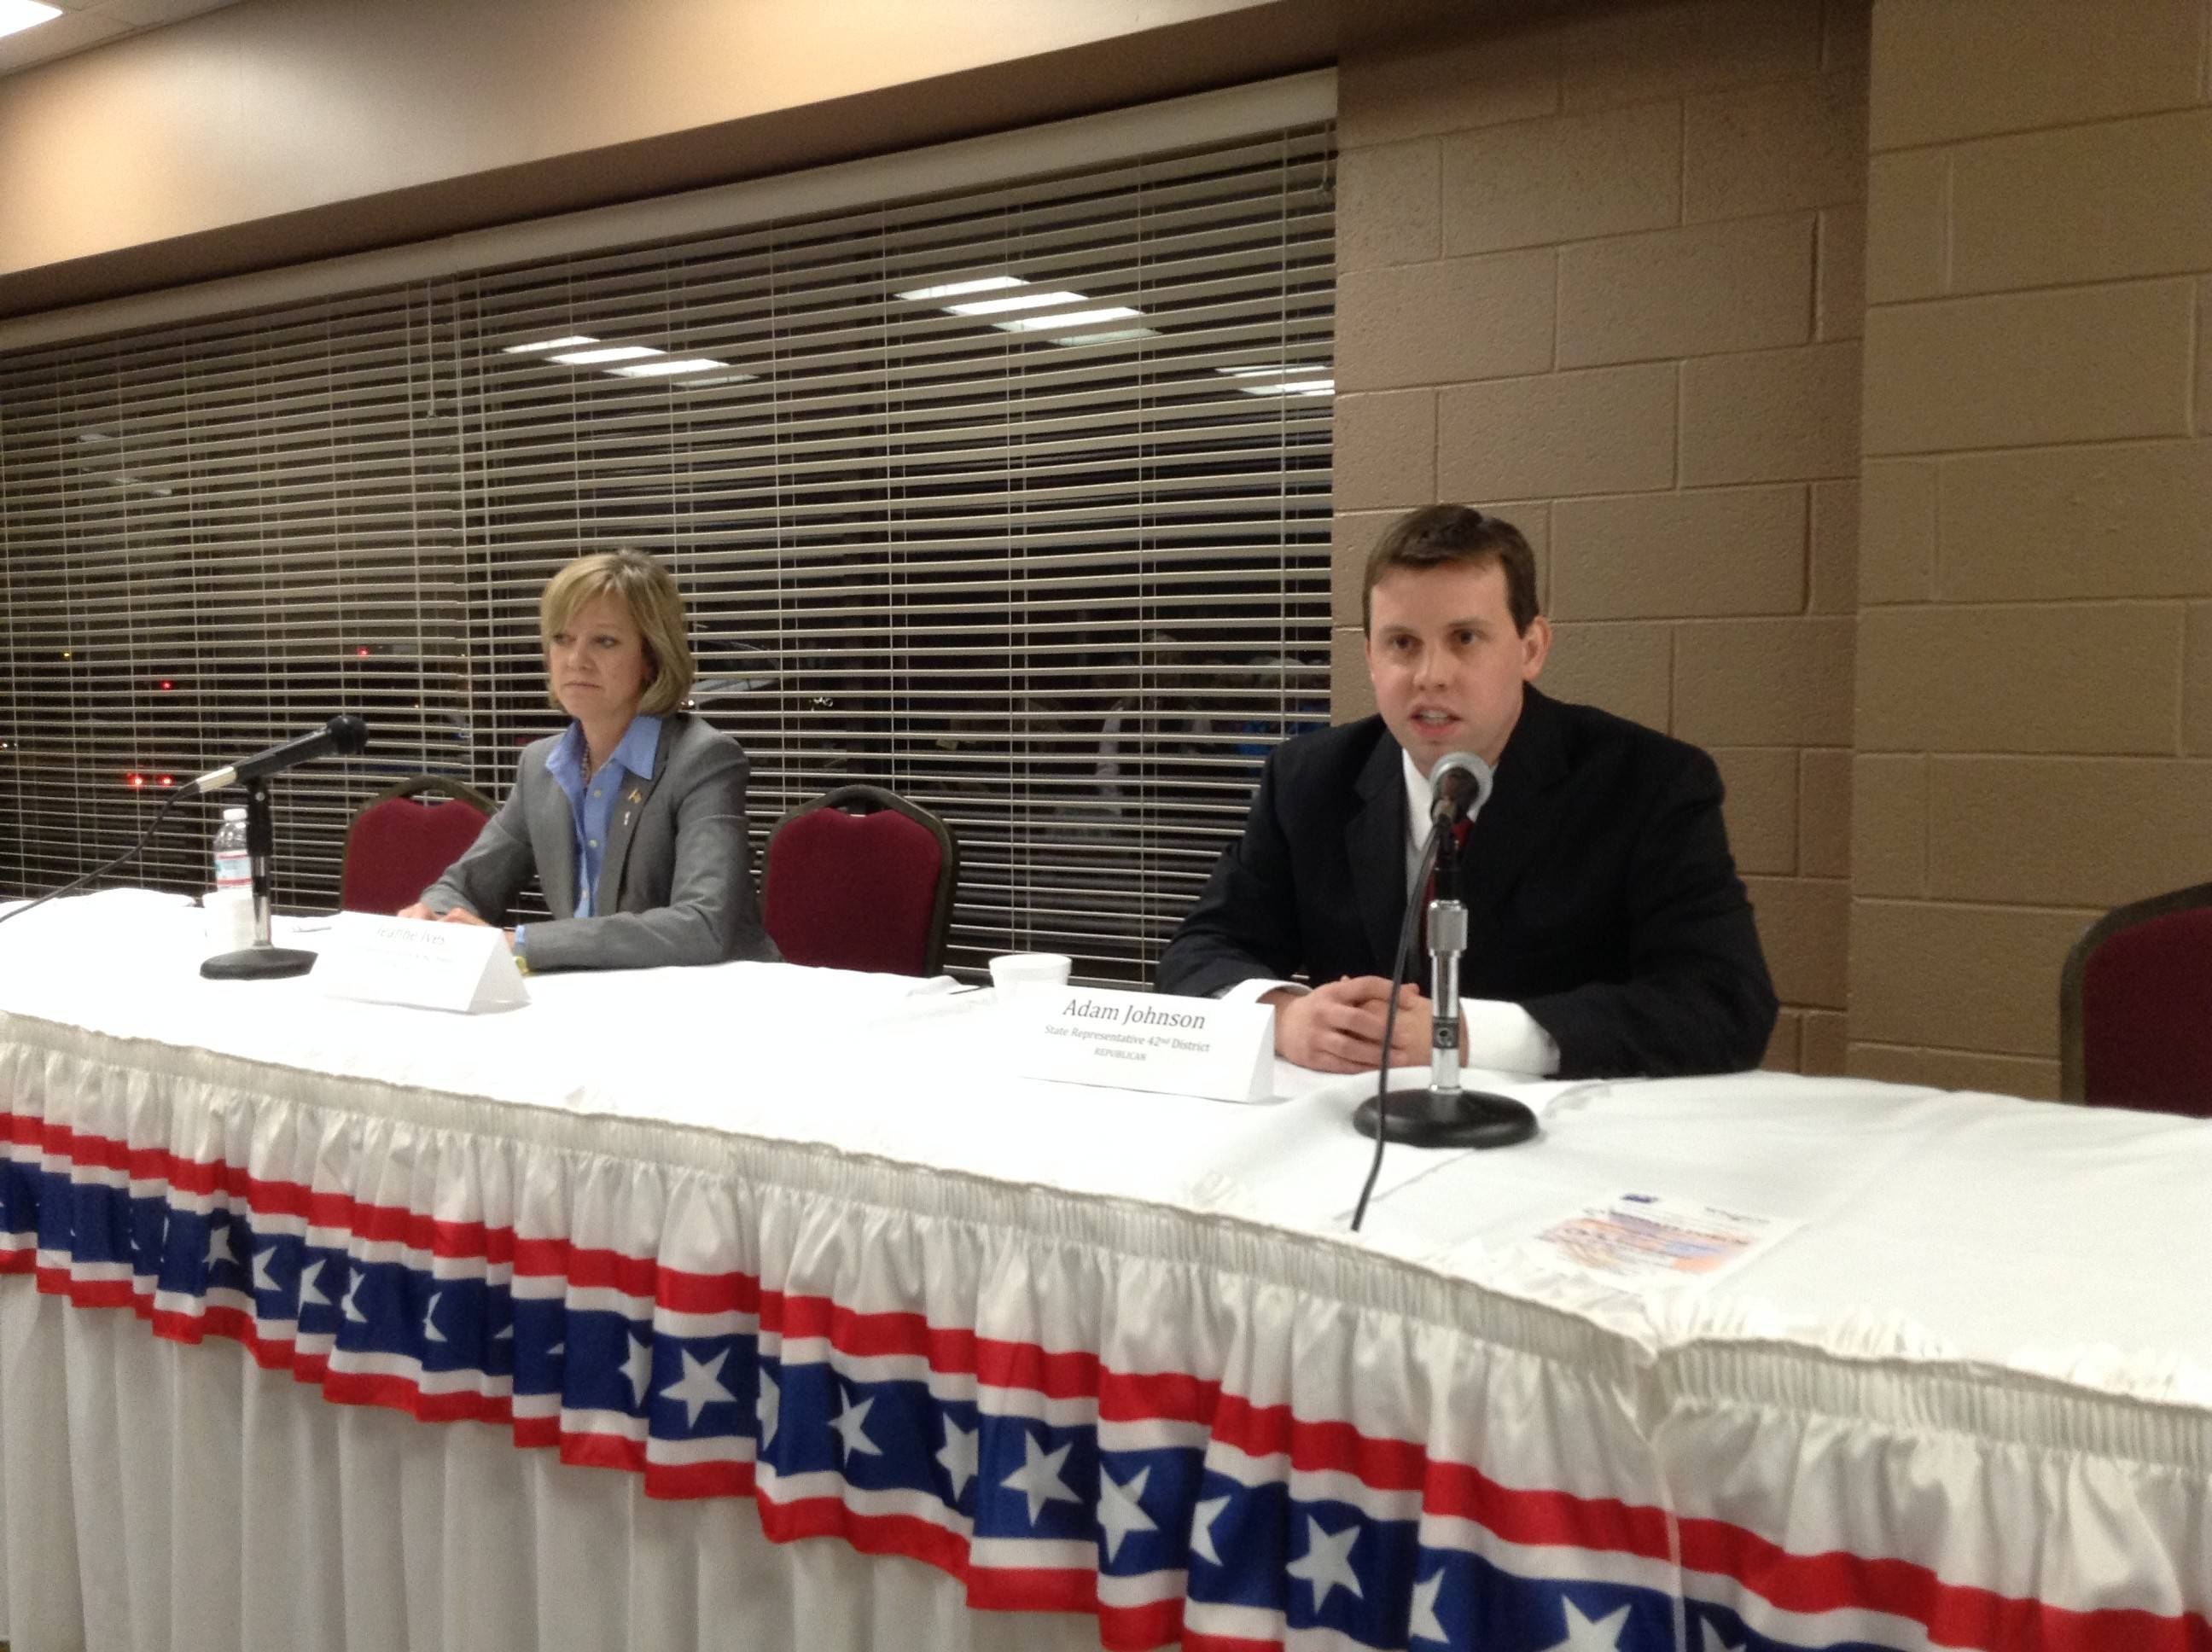 Incumbent state Rep. Jeanne Ives of Wheaton, left, is being challenged by Adam Johnson of Warrenville in the Republican primary for the 48th House District. Both candidates answered questions Thursday at a forum in Wheaton that was sponsored by the League of Women Voters of Wheaton and the Wheaton Chamber of Commerce.